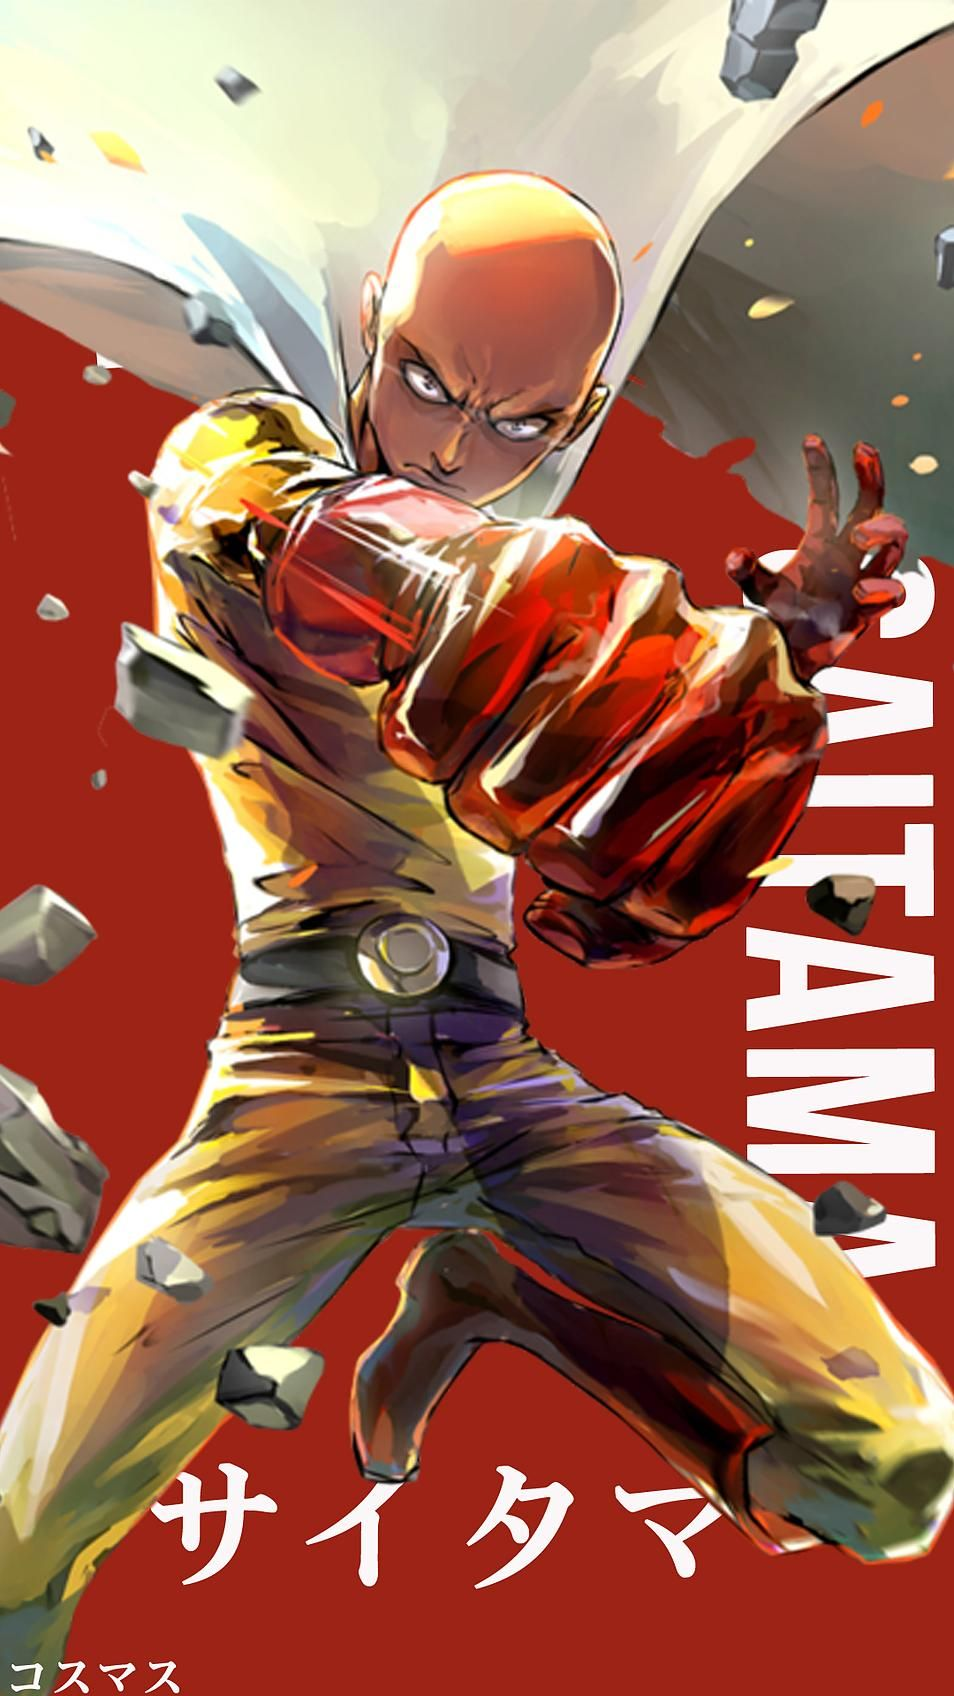 Saitama V2 Korigengi Wallpaper Anime Manga de one